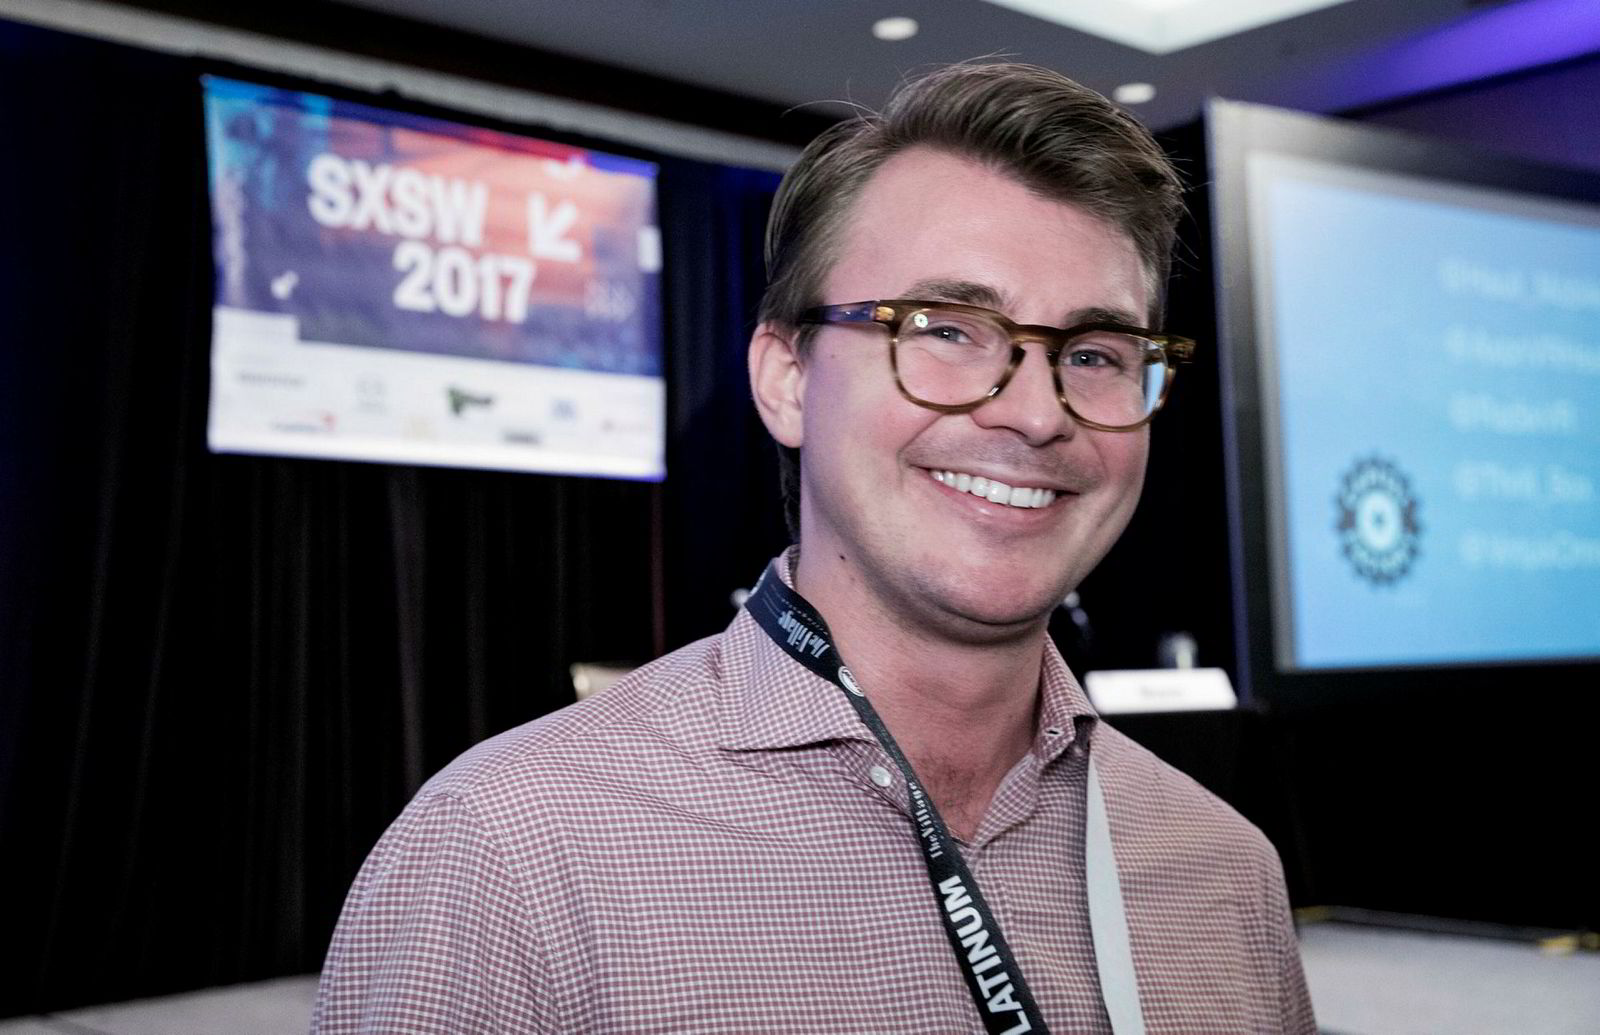 Will Mason fra Upload er på South By Southwest for å snakke om vr.